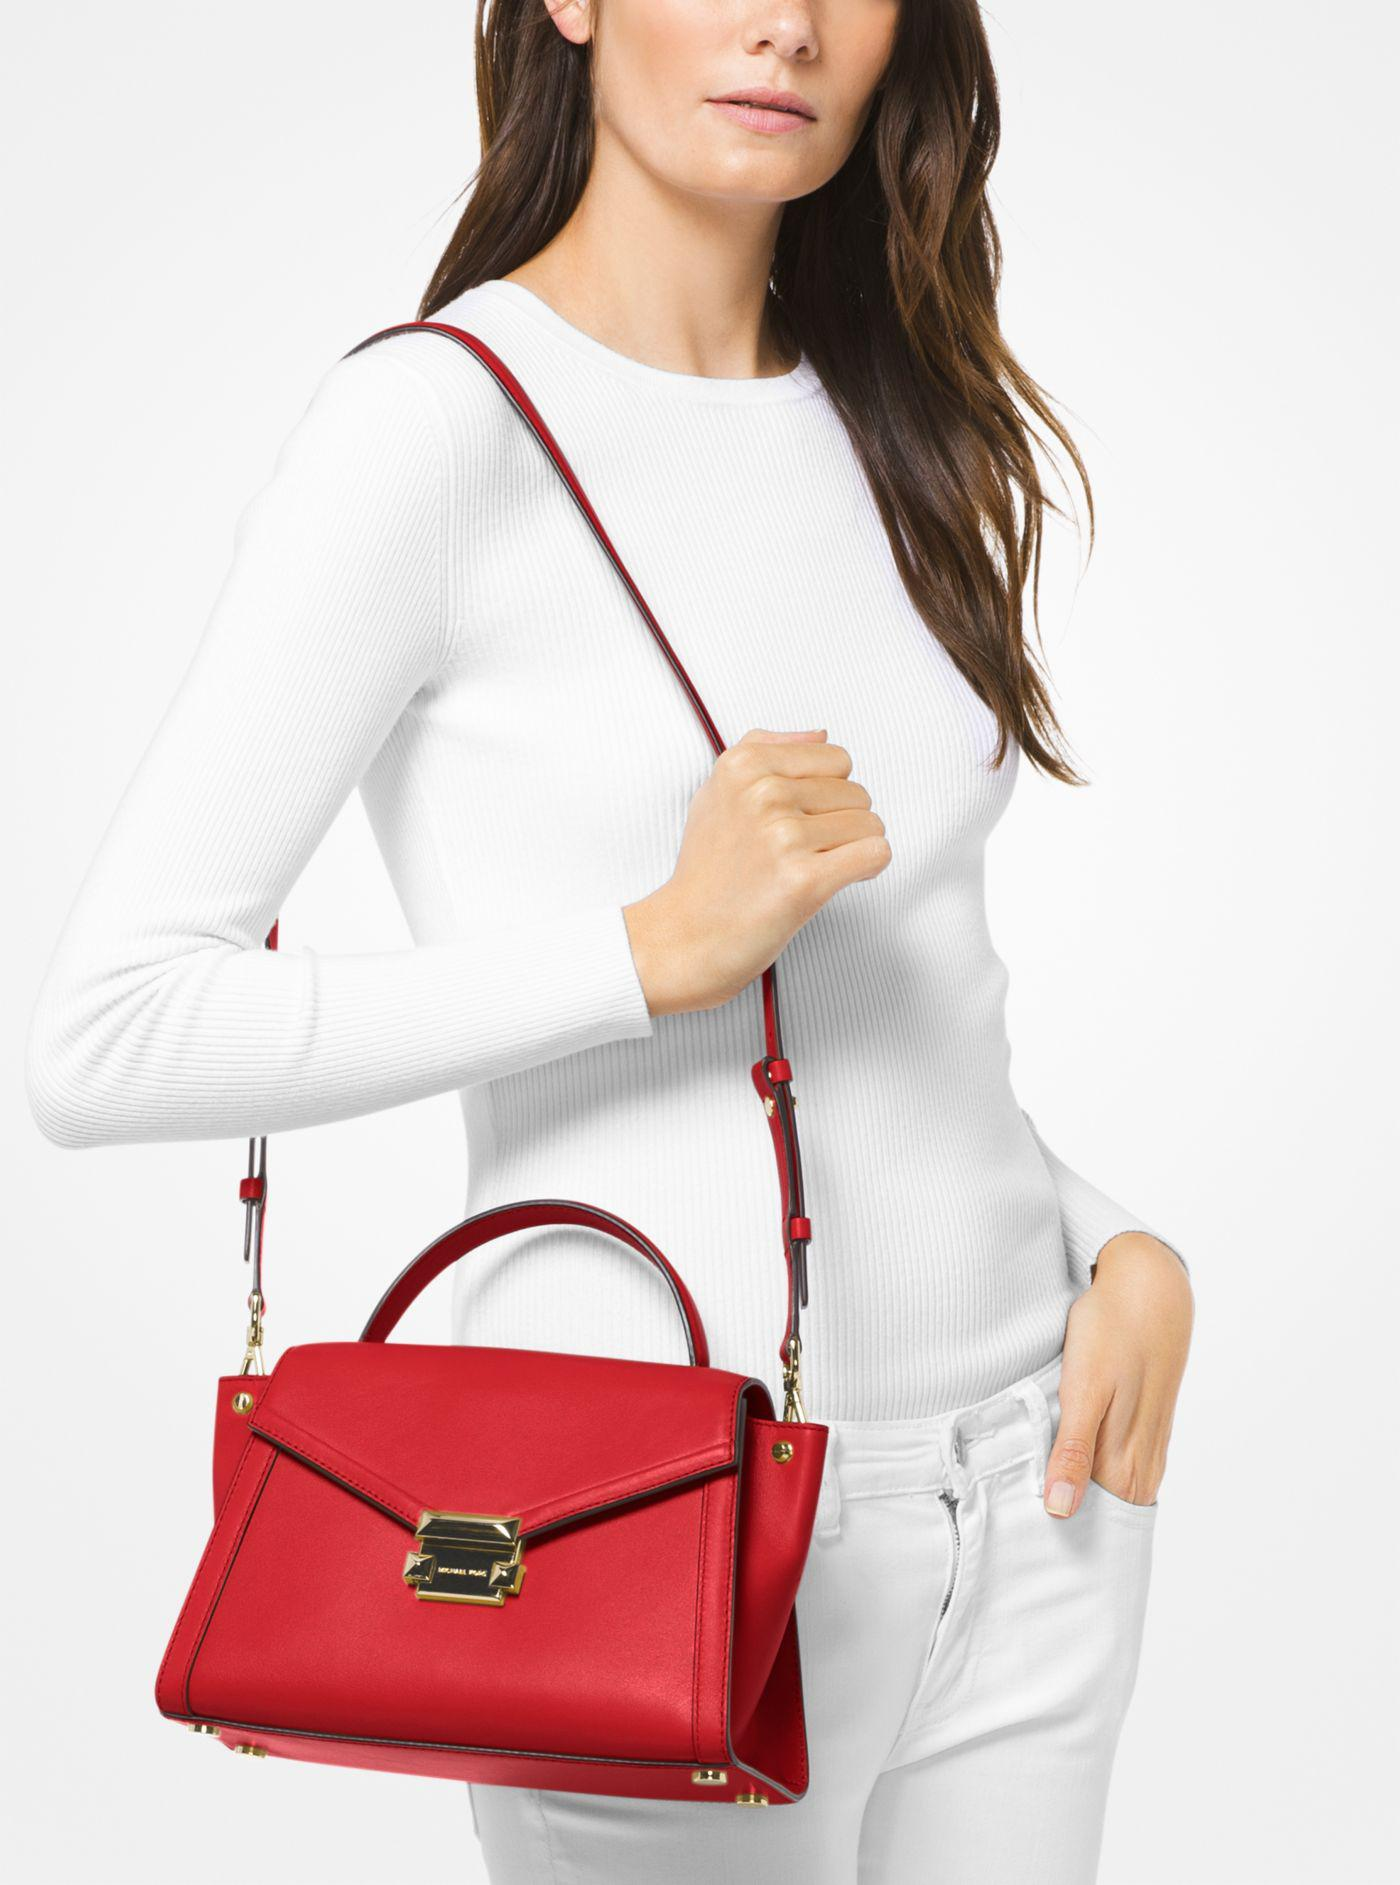 6872afe688440e Michael Kors Whitney Medium Leather Satchel in Red - Lyst